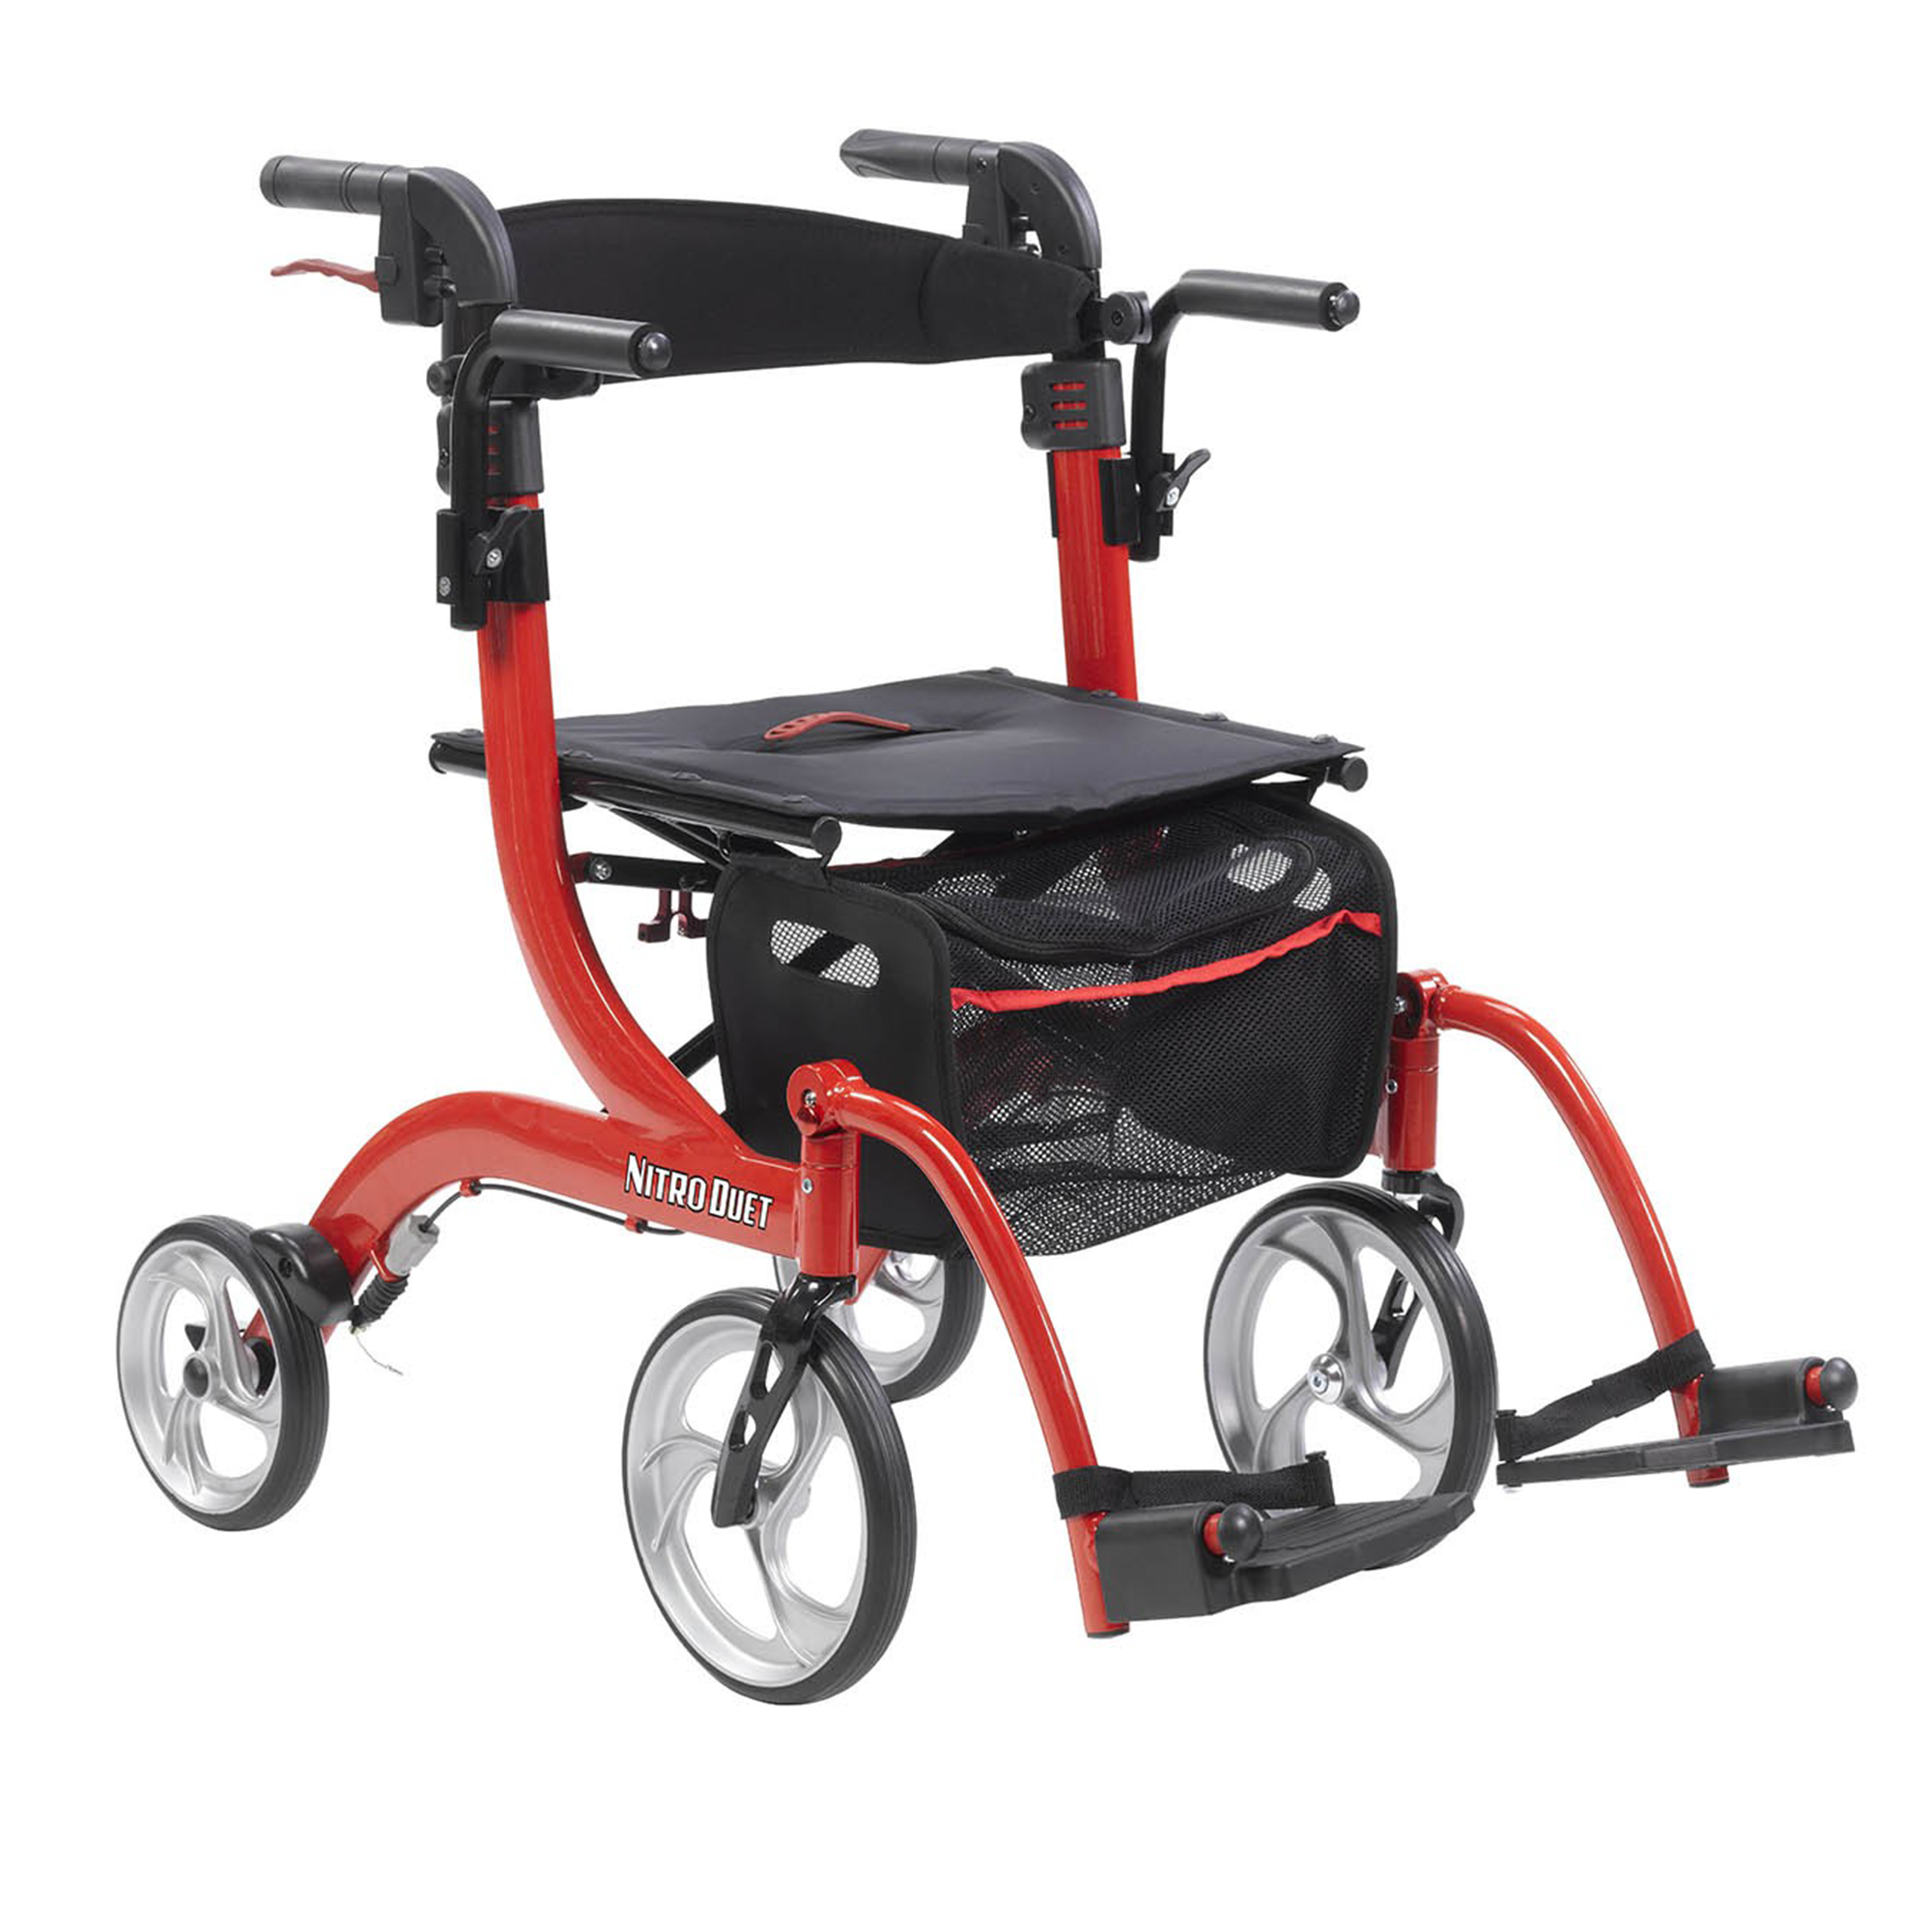 Nitro Duet Rollator and Transport Chair - Transport chair position